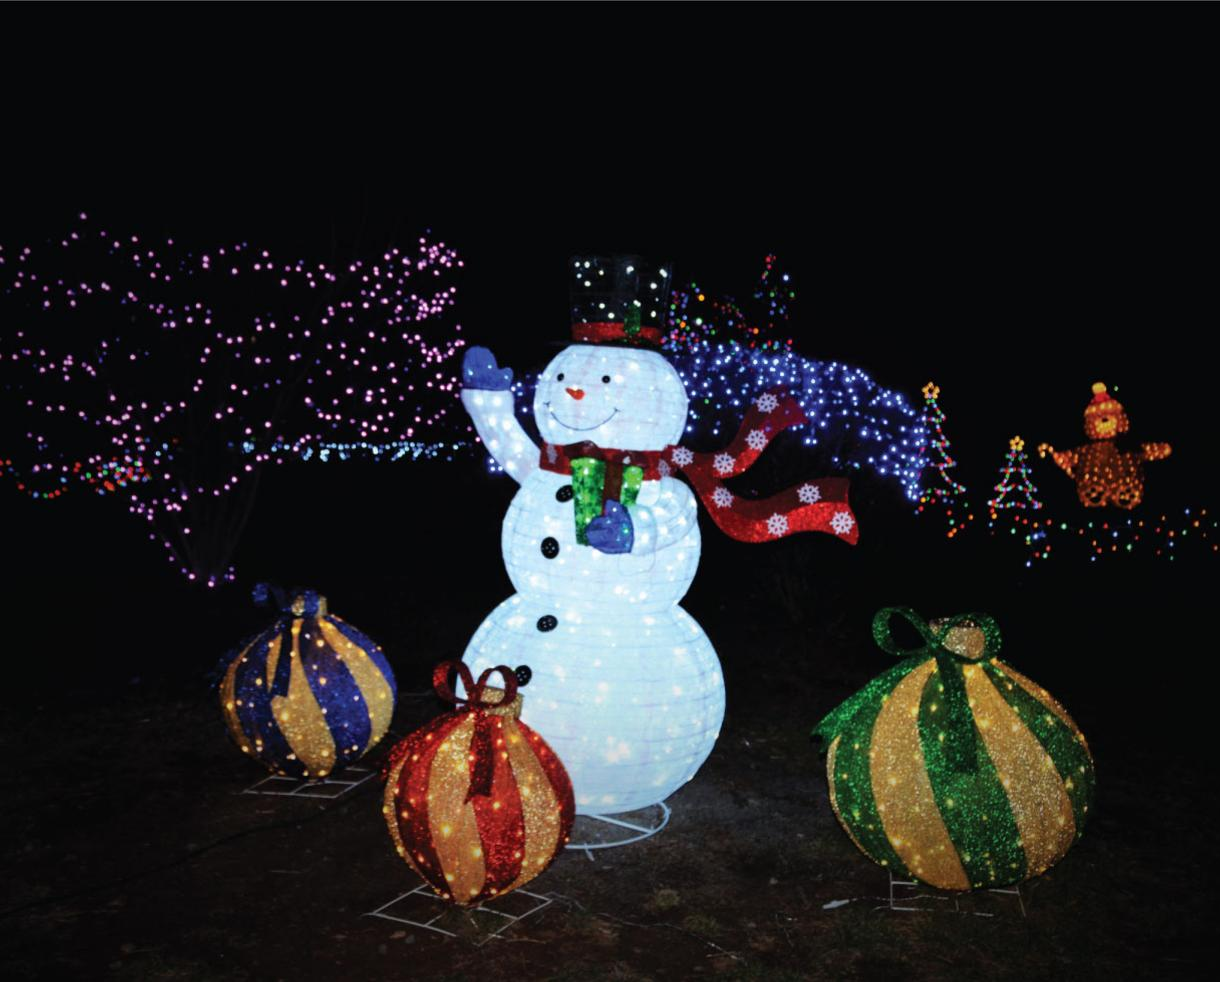 $14 for 2 Tickets to Christmas Village at Leesburg Animal Park ($19.90 Value - 30% Off)